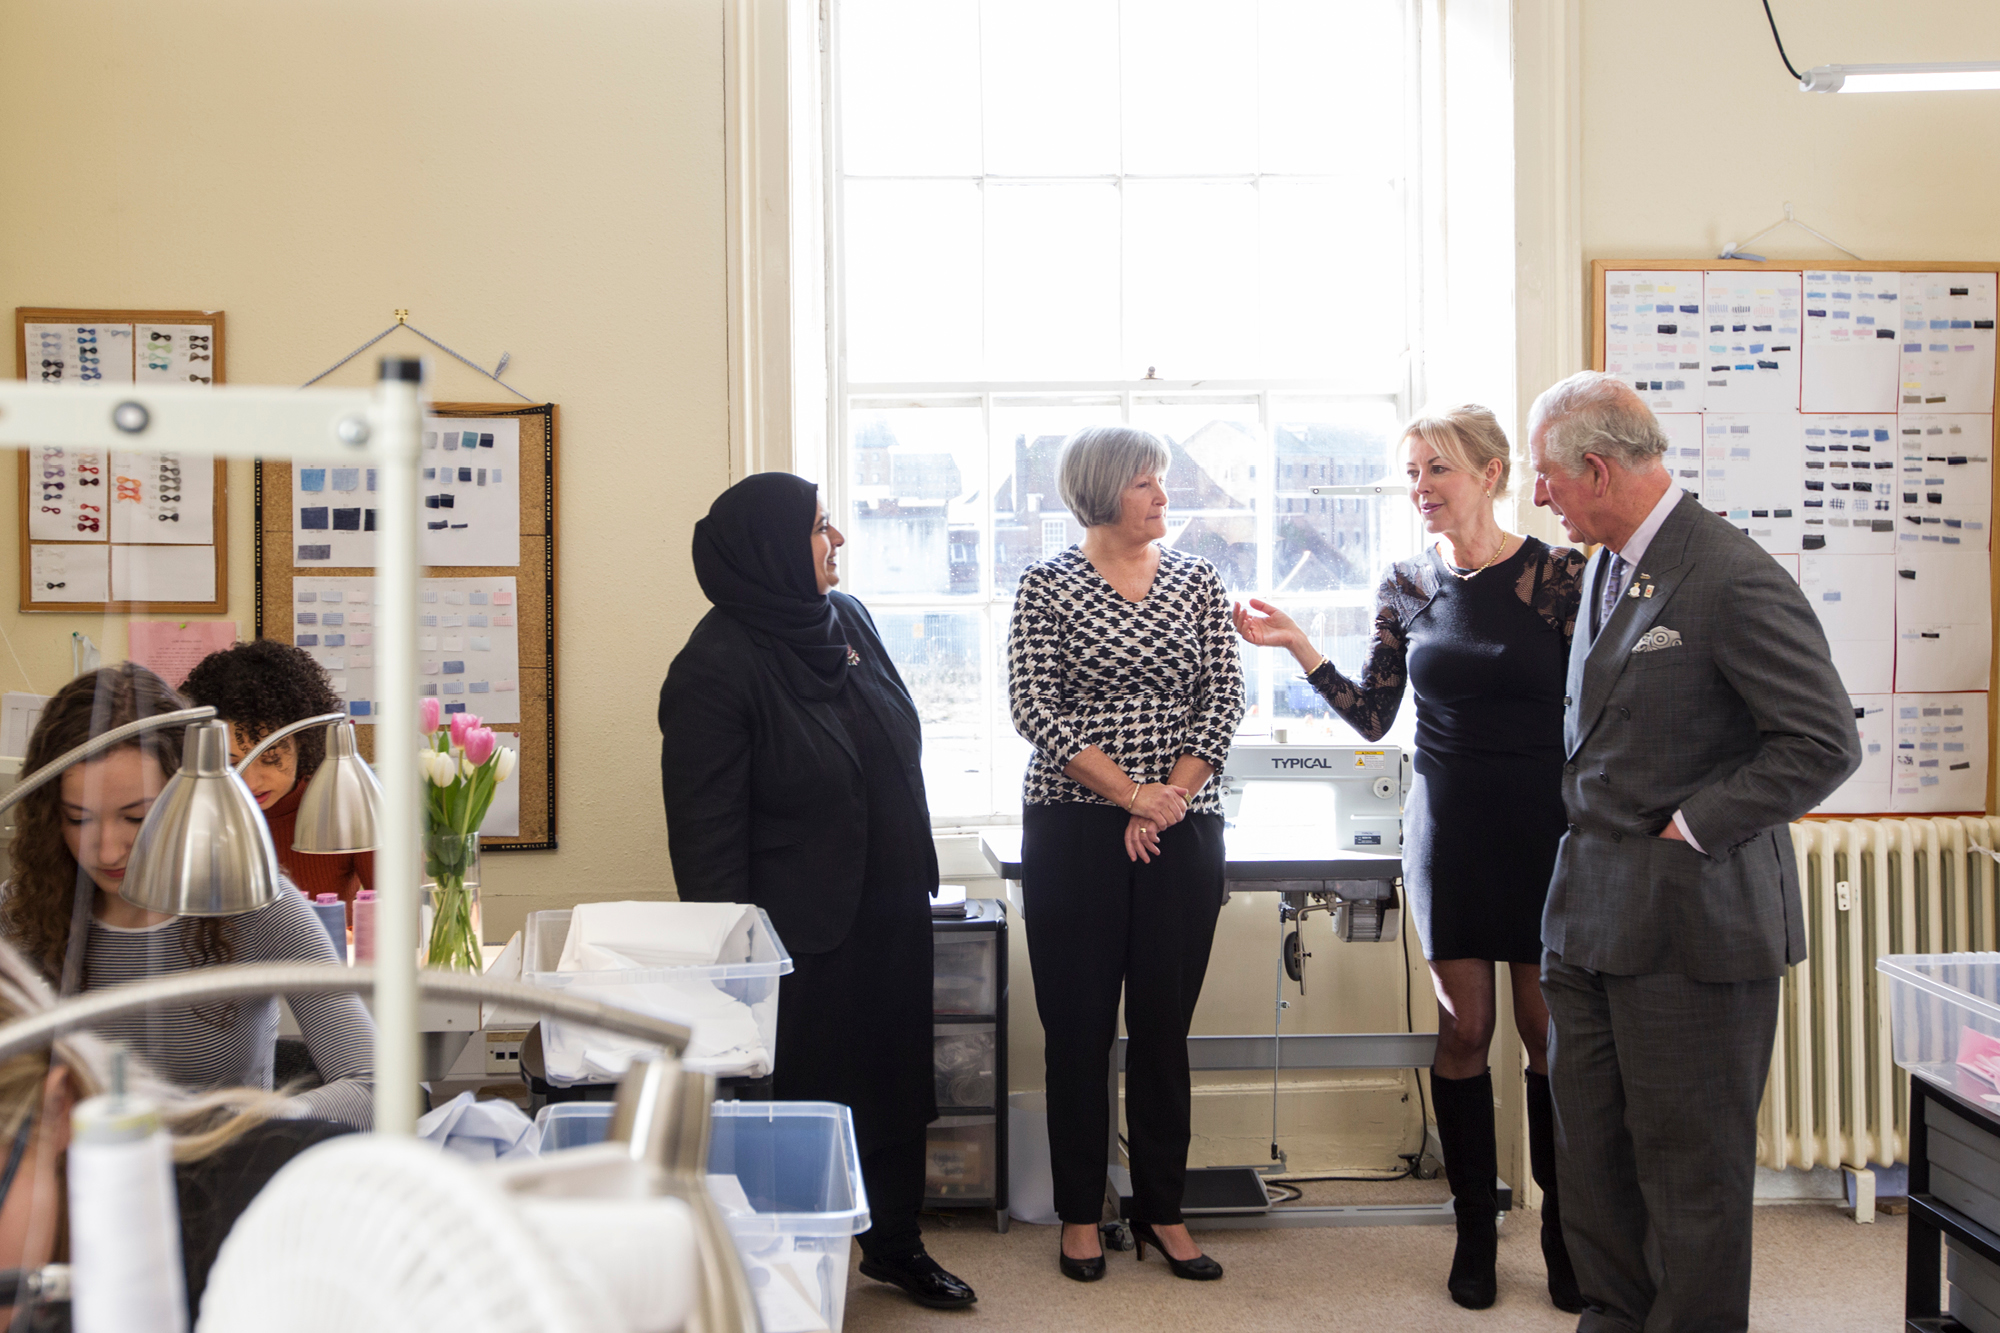 HRH Prince Charles met Aysha Randera while visiting the Emma Willis factory in February 2020